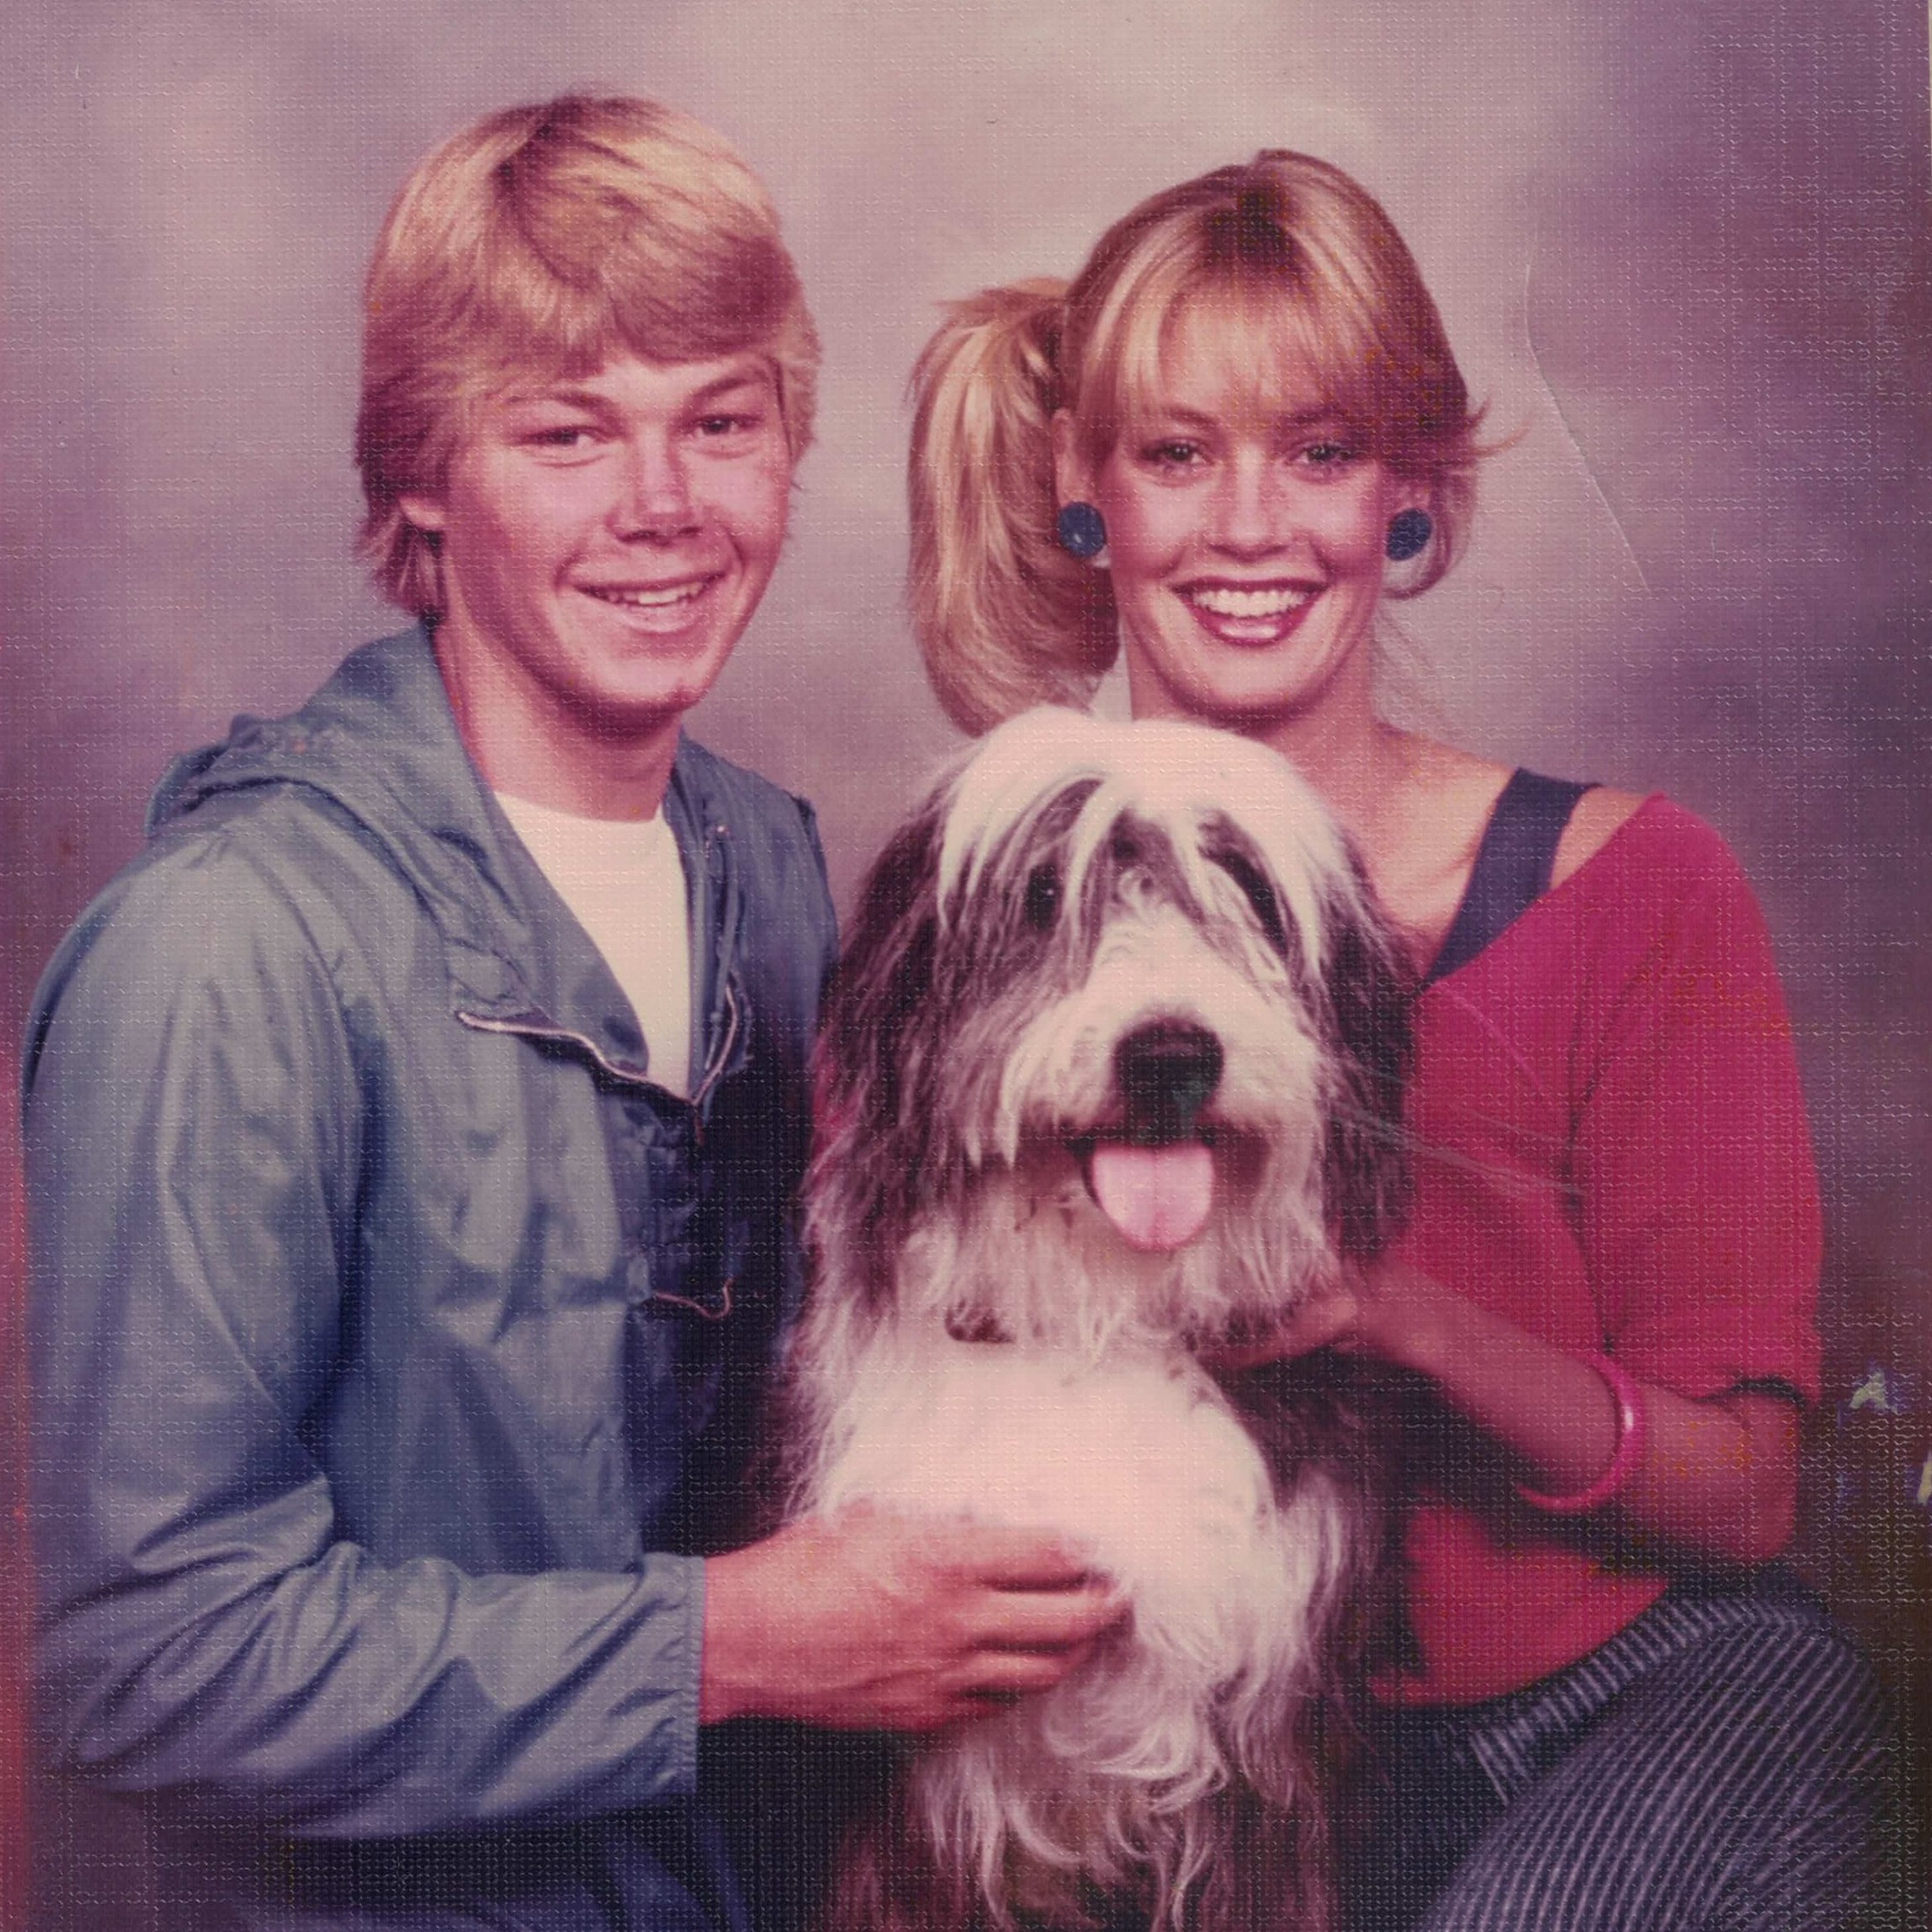 With her brother Rob and family dog Bumper